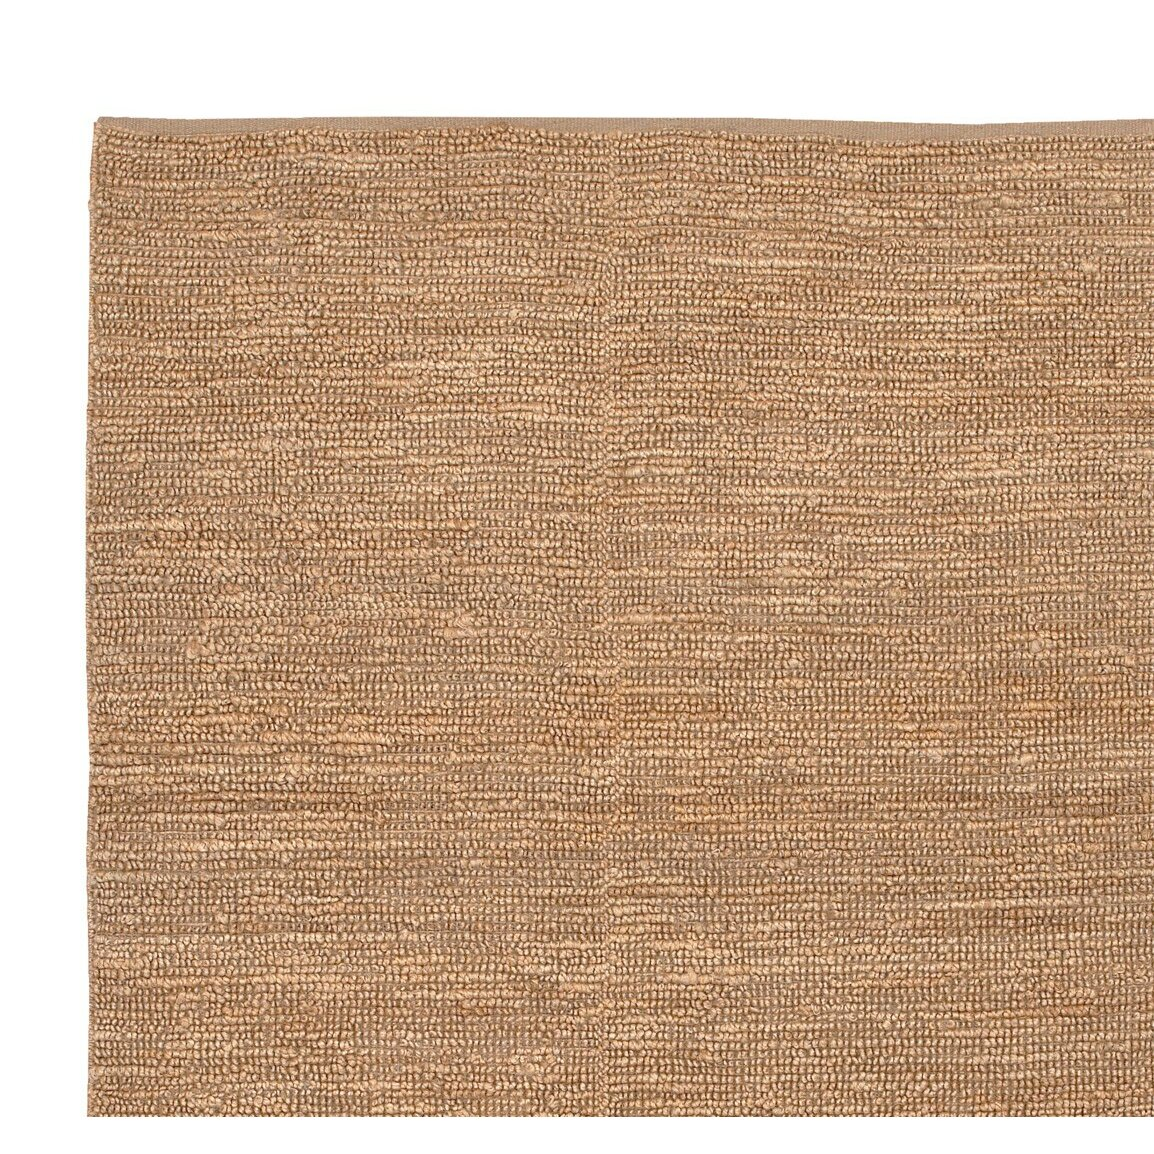 dwellstudio hune rug in wheat reviews dwellstudio